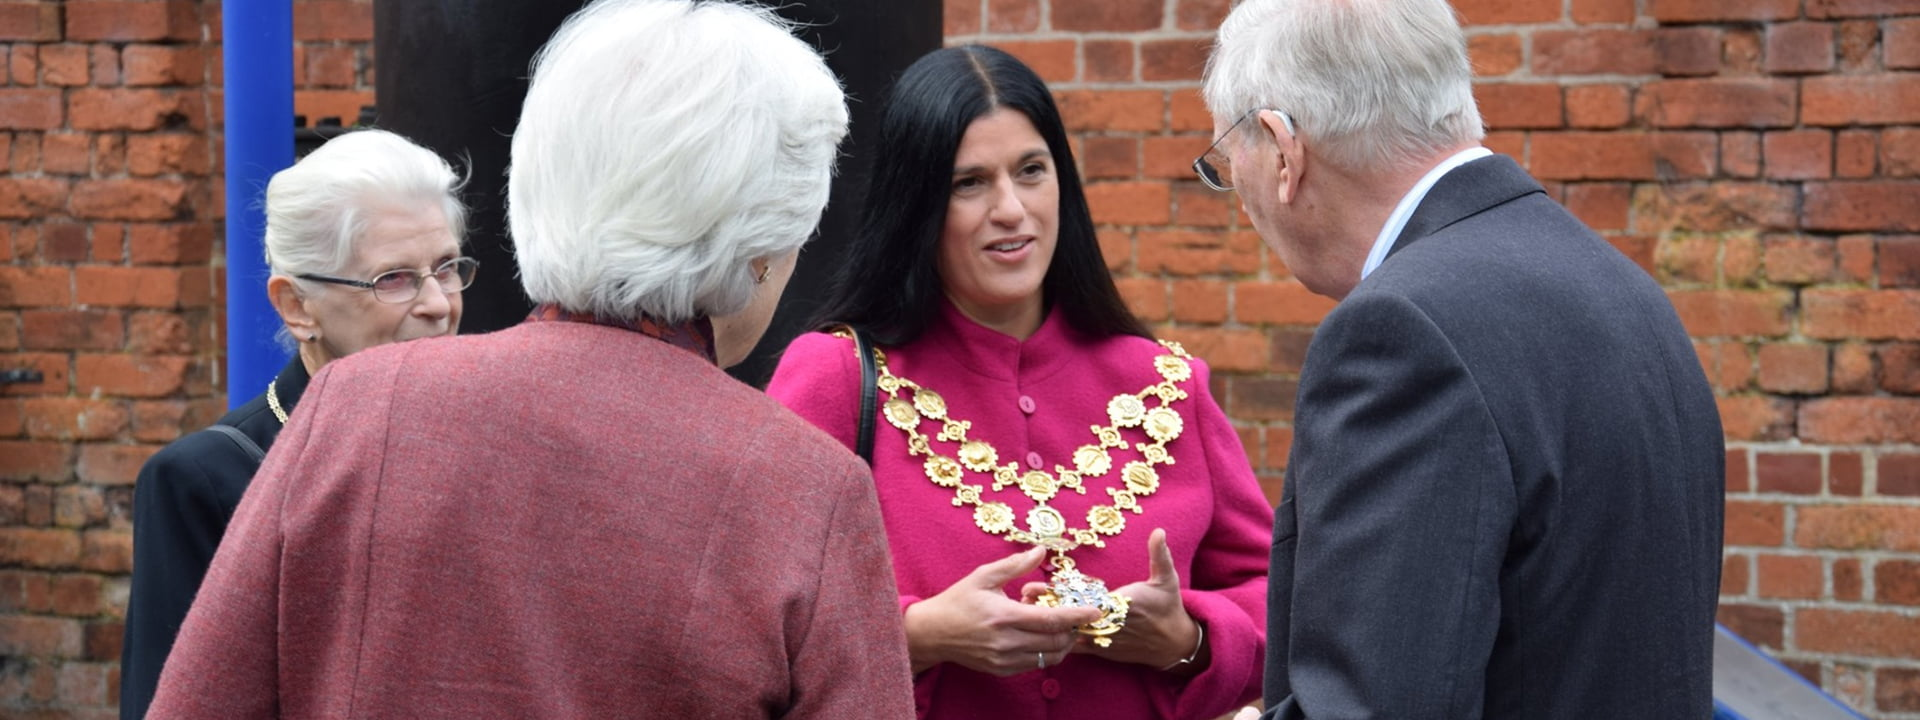 The Mayor wearing her livery collar